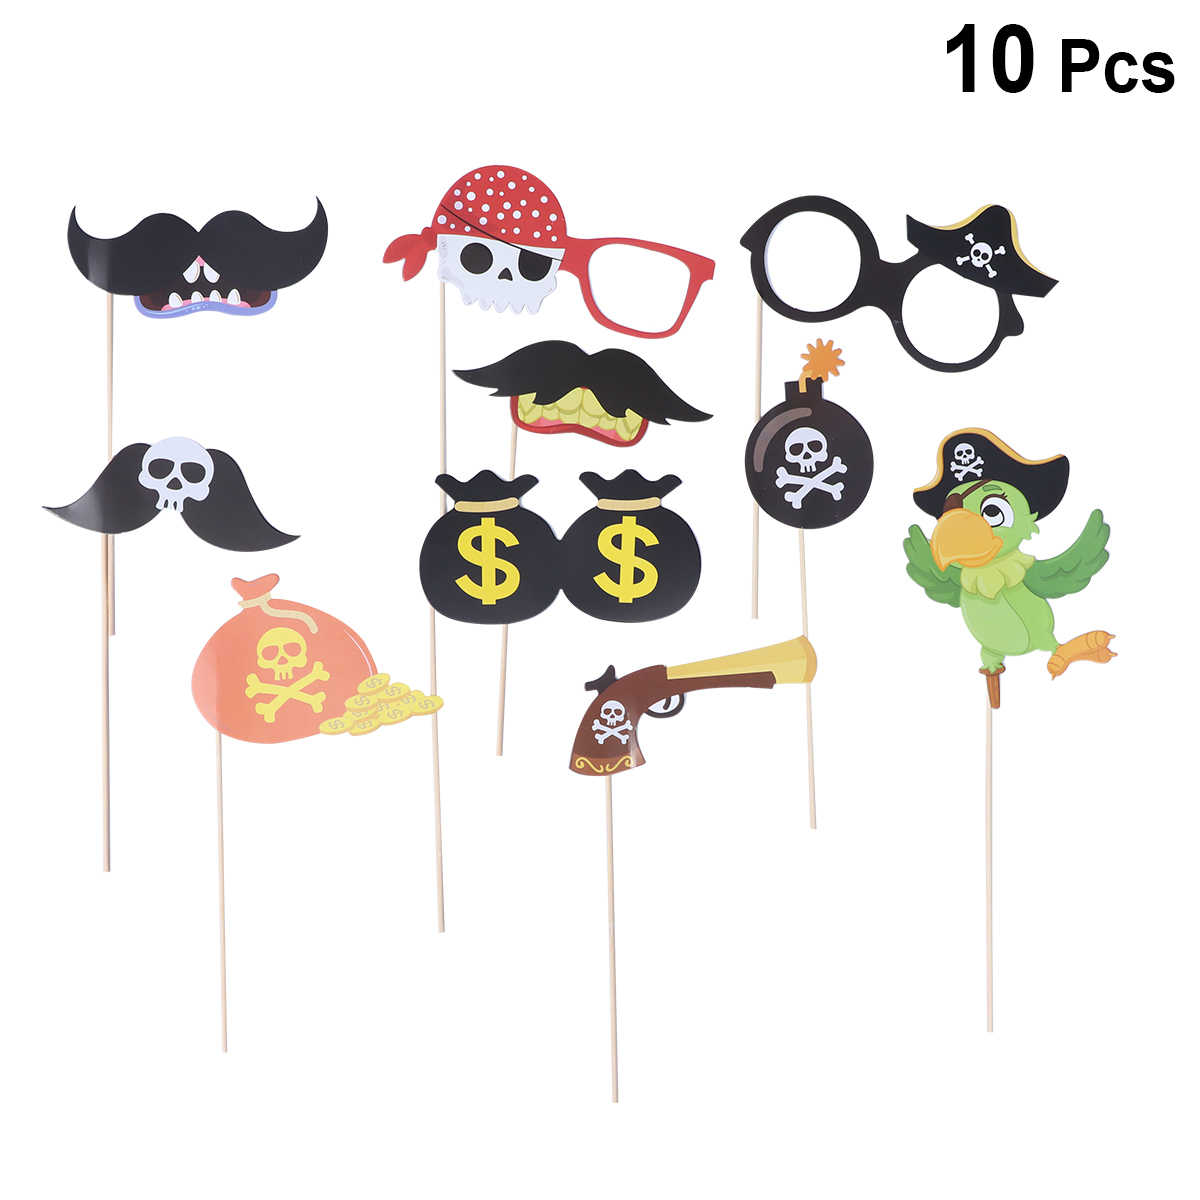 10pcs Photobooth Props Birthday Photo Props Pirate Theme Cartoon Paper Mask Selfie Props Photo Props Photo Booth Props Party